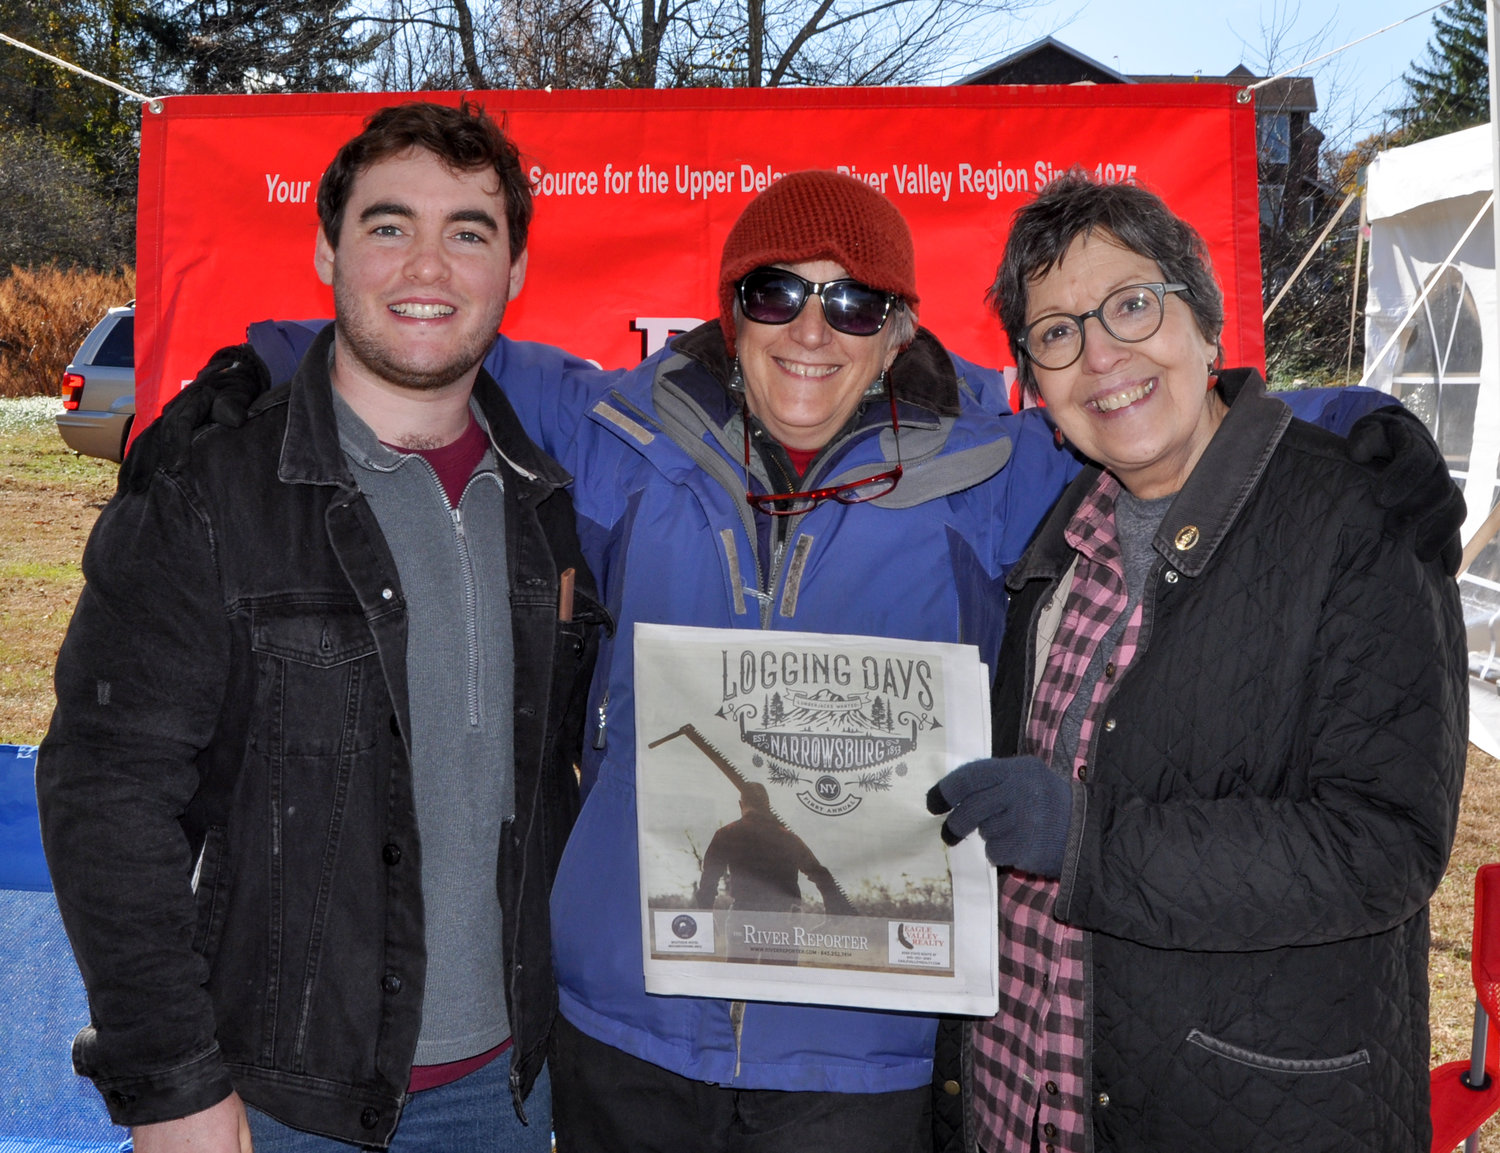 I like the folks I work with, which comes in handy when I run into co-workers like Owen Walsh, left, and Barbara Winfield, seen here flanking TRR publisher Laurie Stuart. All of us were out to celebrate the inaugural Narrowsburg Logging Days: a true highlight of 2019. Can't wait for next year!